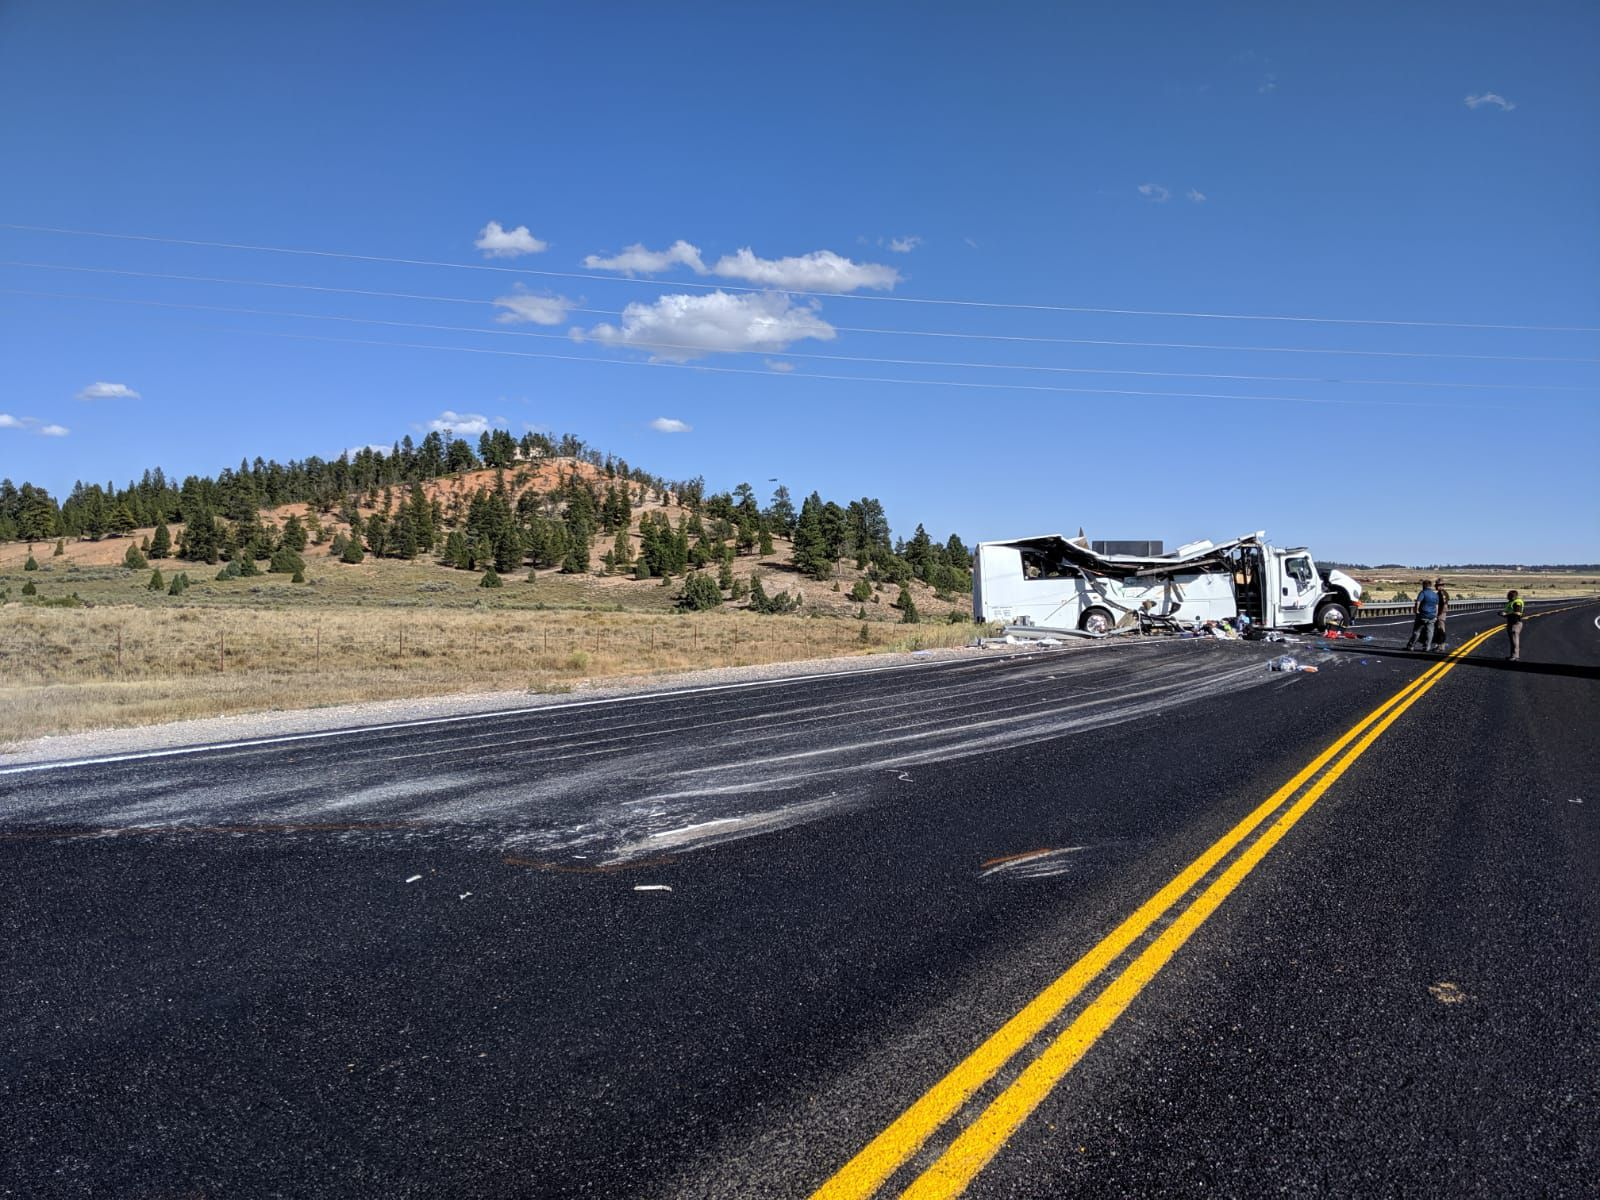 Tour bus crash near Bryce Canyon National Park leaves 4 Chinese tourists